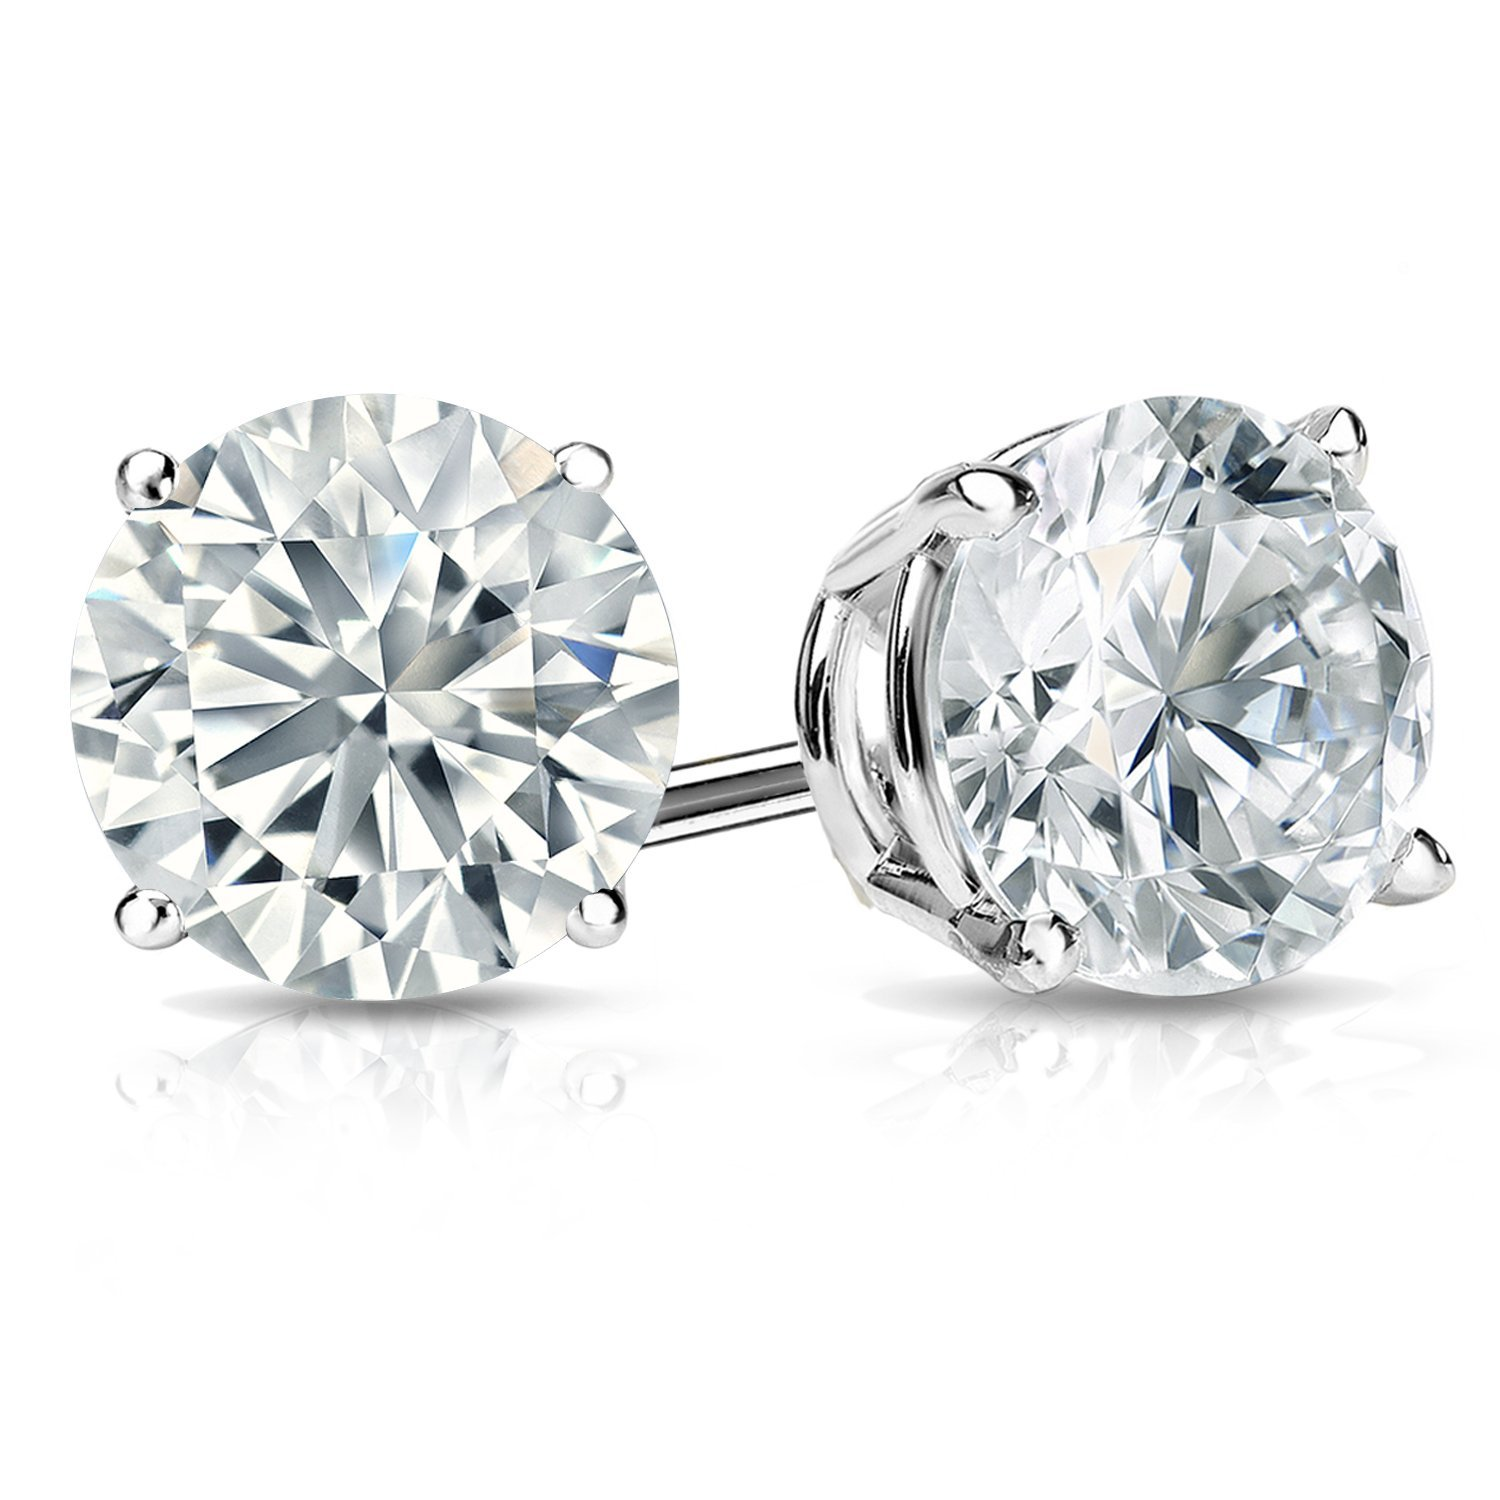 White Gold Platinum Round Diamond Stud Earrings 0 20 4 00 Ctw Sarkisians Jewelry